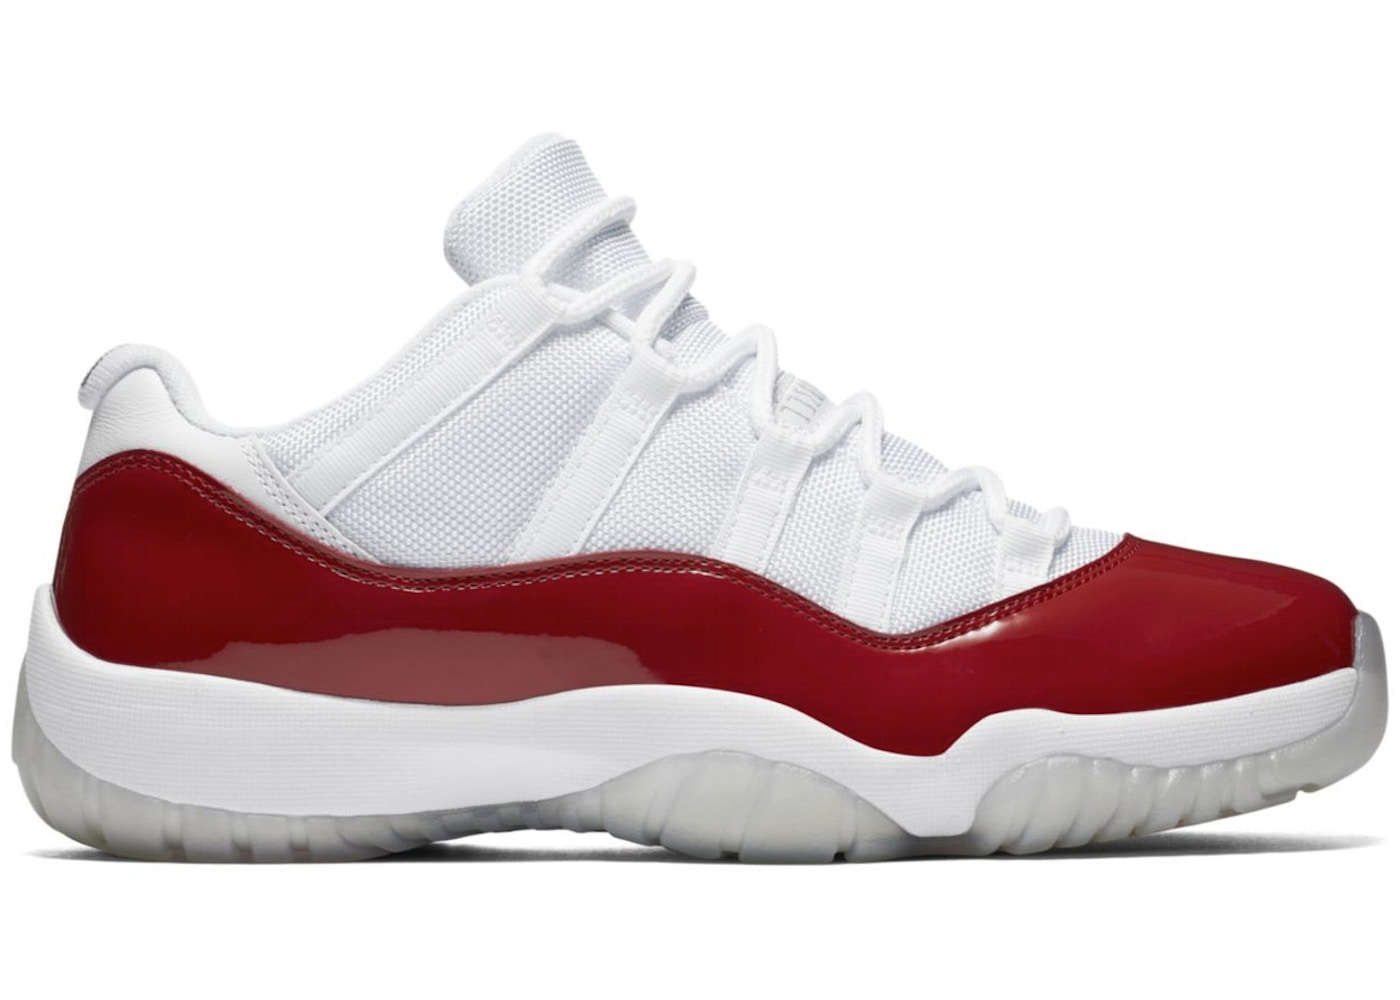 a5bfec66cc46a3 Jordan 11 Retro Low Cherry (2016)